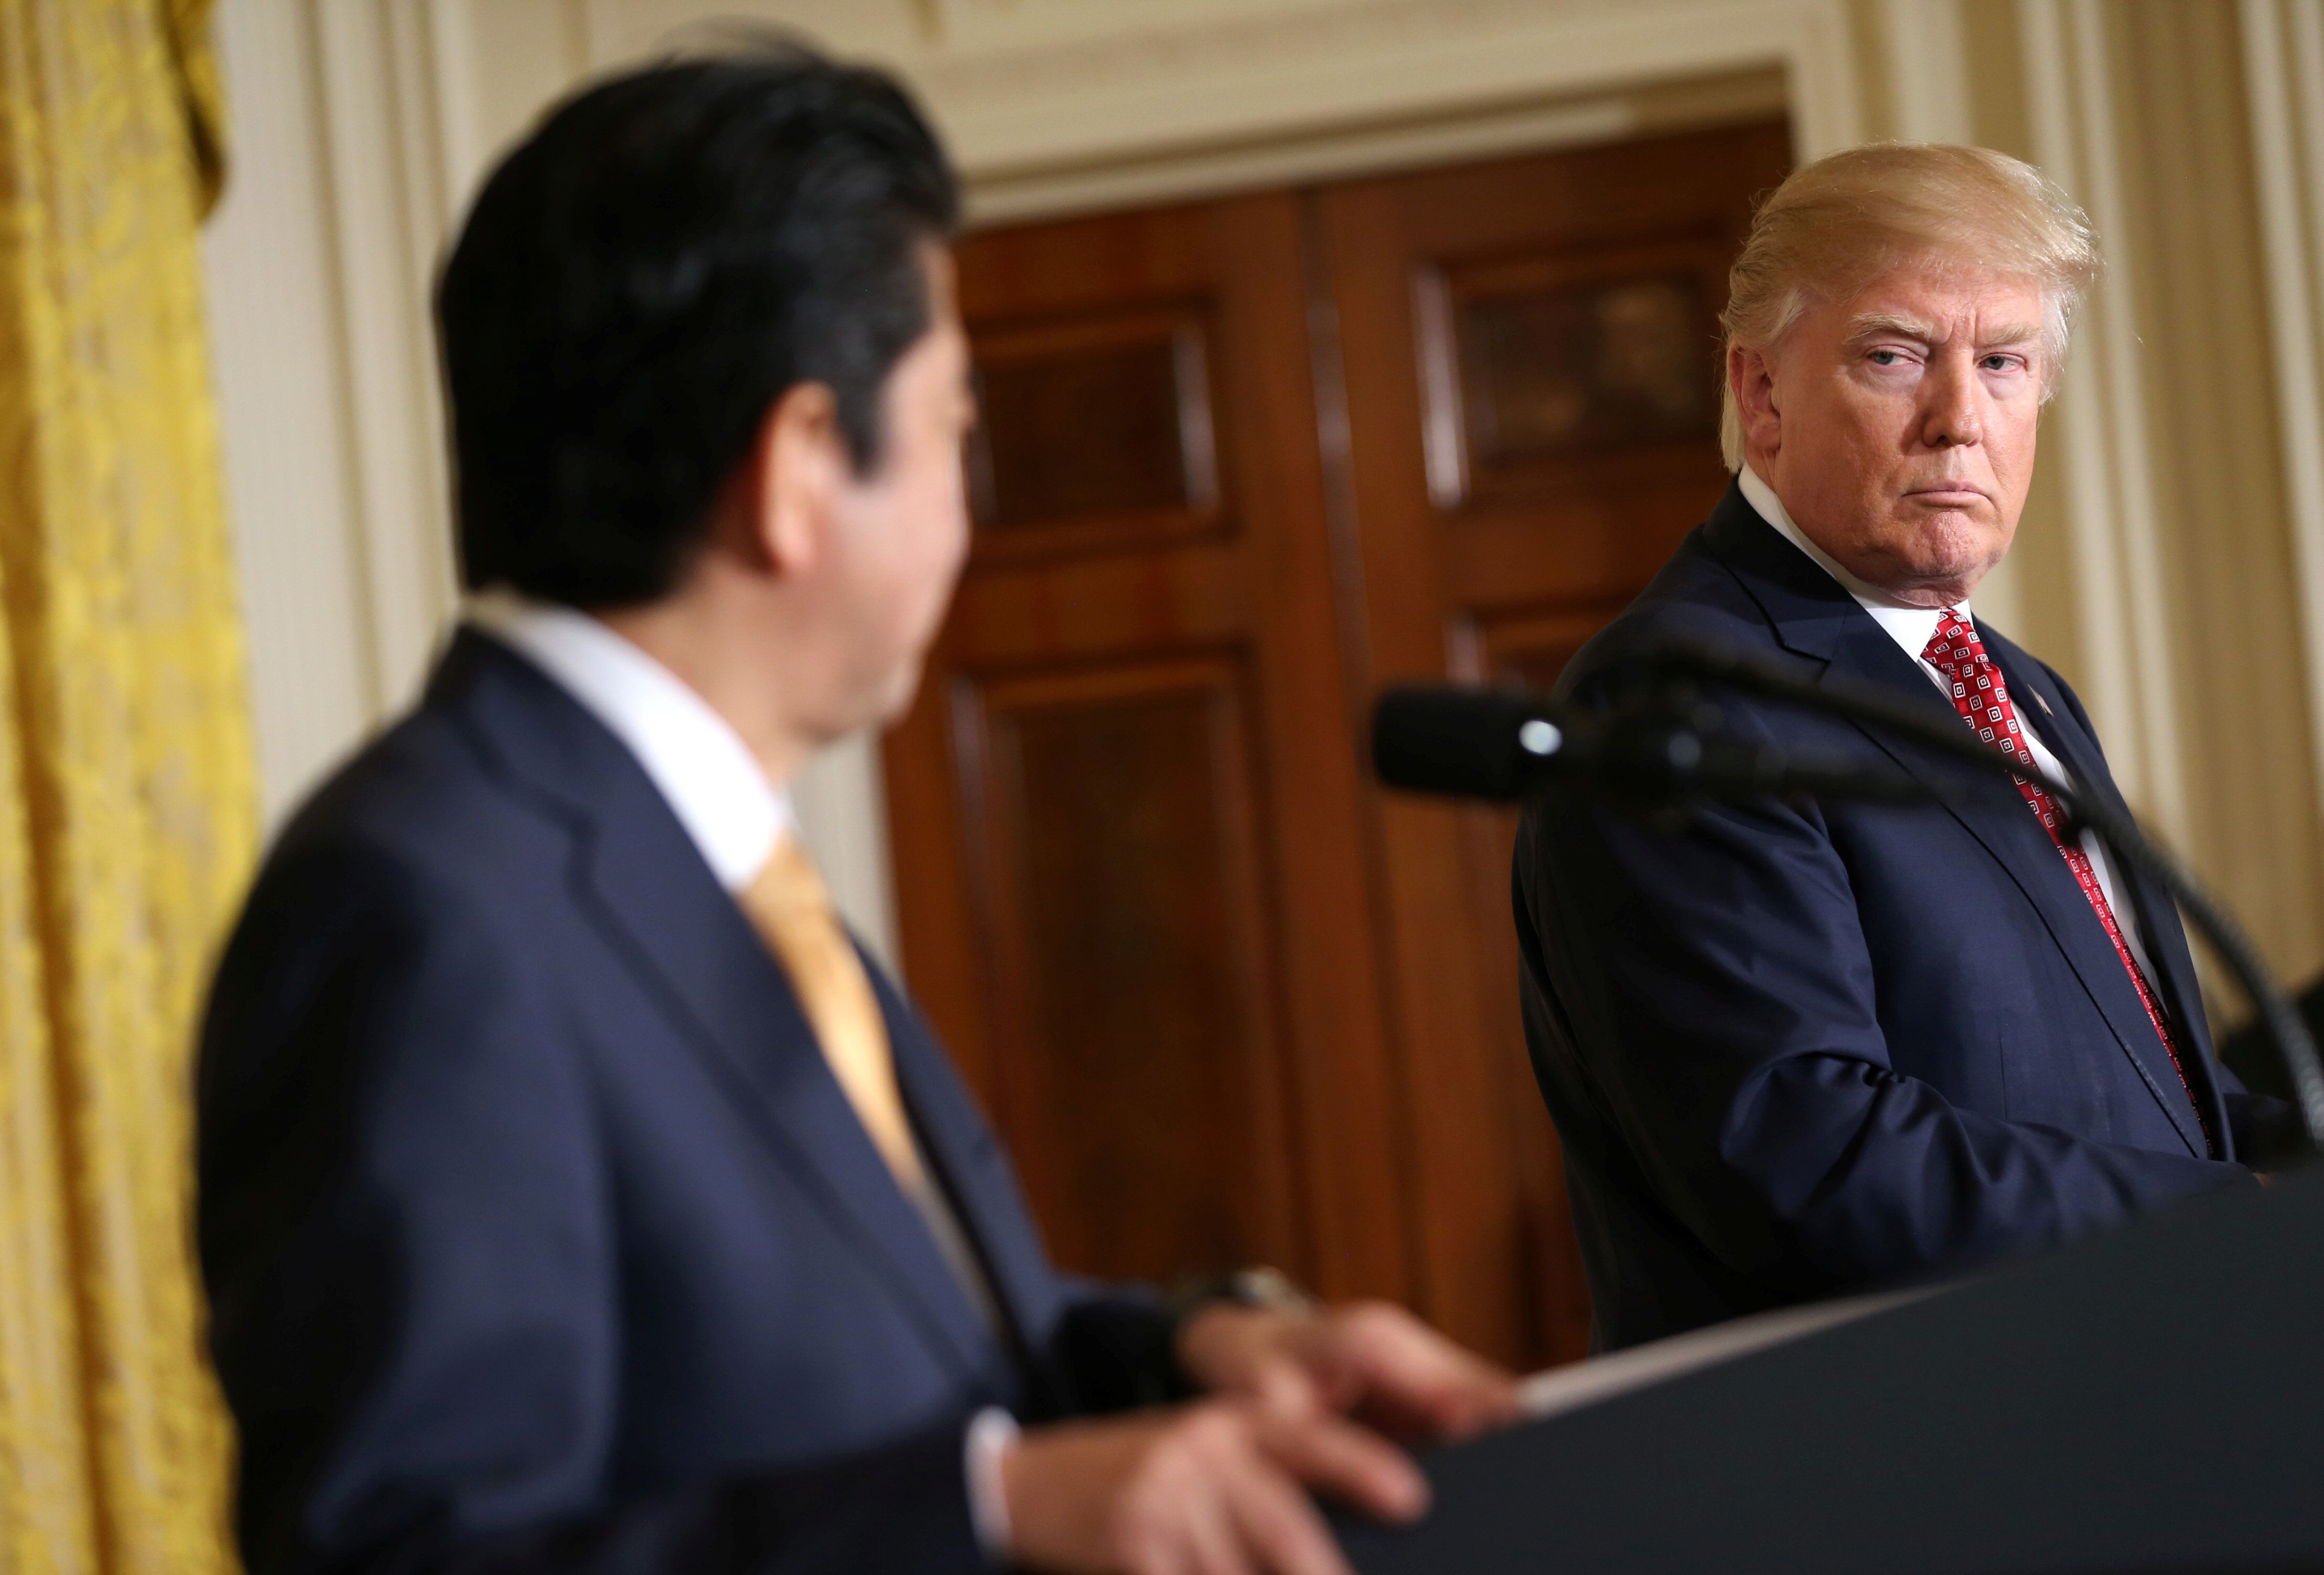 U.S. President Donald Trump and Japanese Prime Minister Shinzo Abe take part during a joint news conference at the White House in Washington, U.S., February 10, 2017.     REUTERS/Joshua Roberts